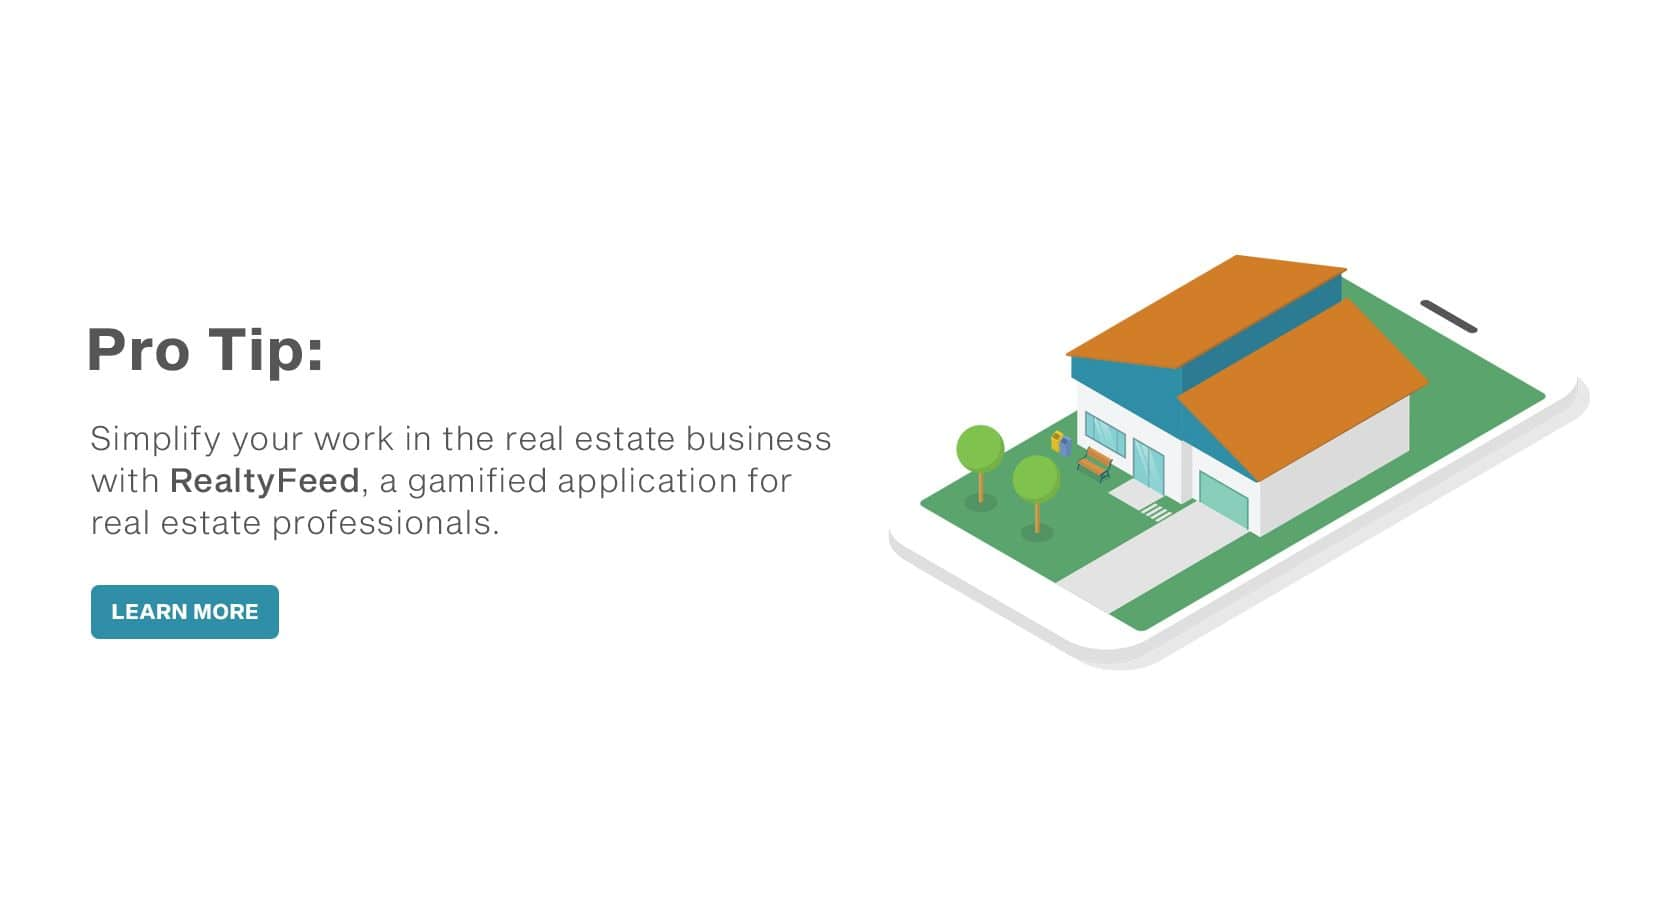 Pro Tip: Simplify your work in the real estate business with RealtyFeed, a gamified application for real estate professionals.